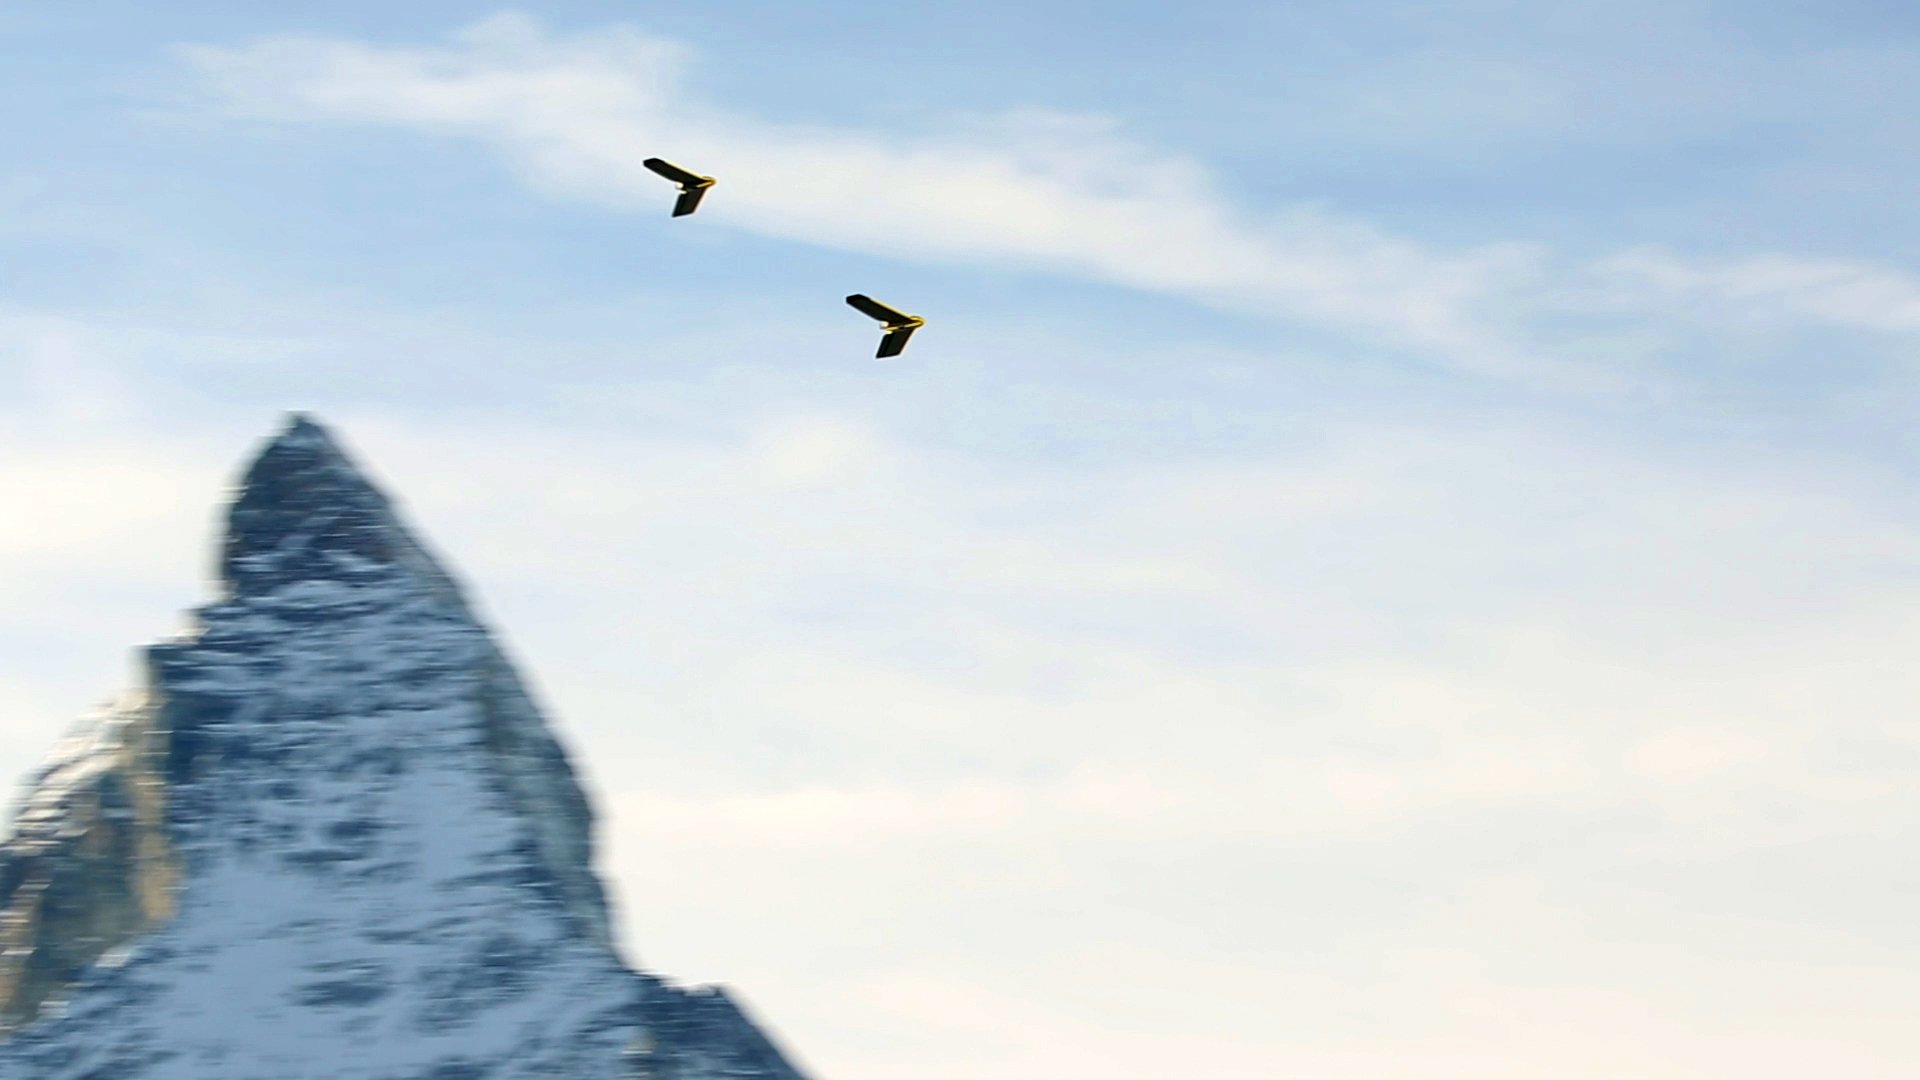 senseFly releases swarm technology for mapping - sUAS News - The Business of Drones